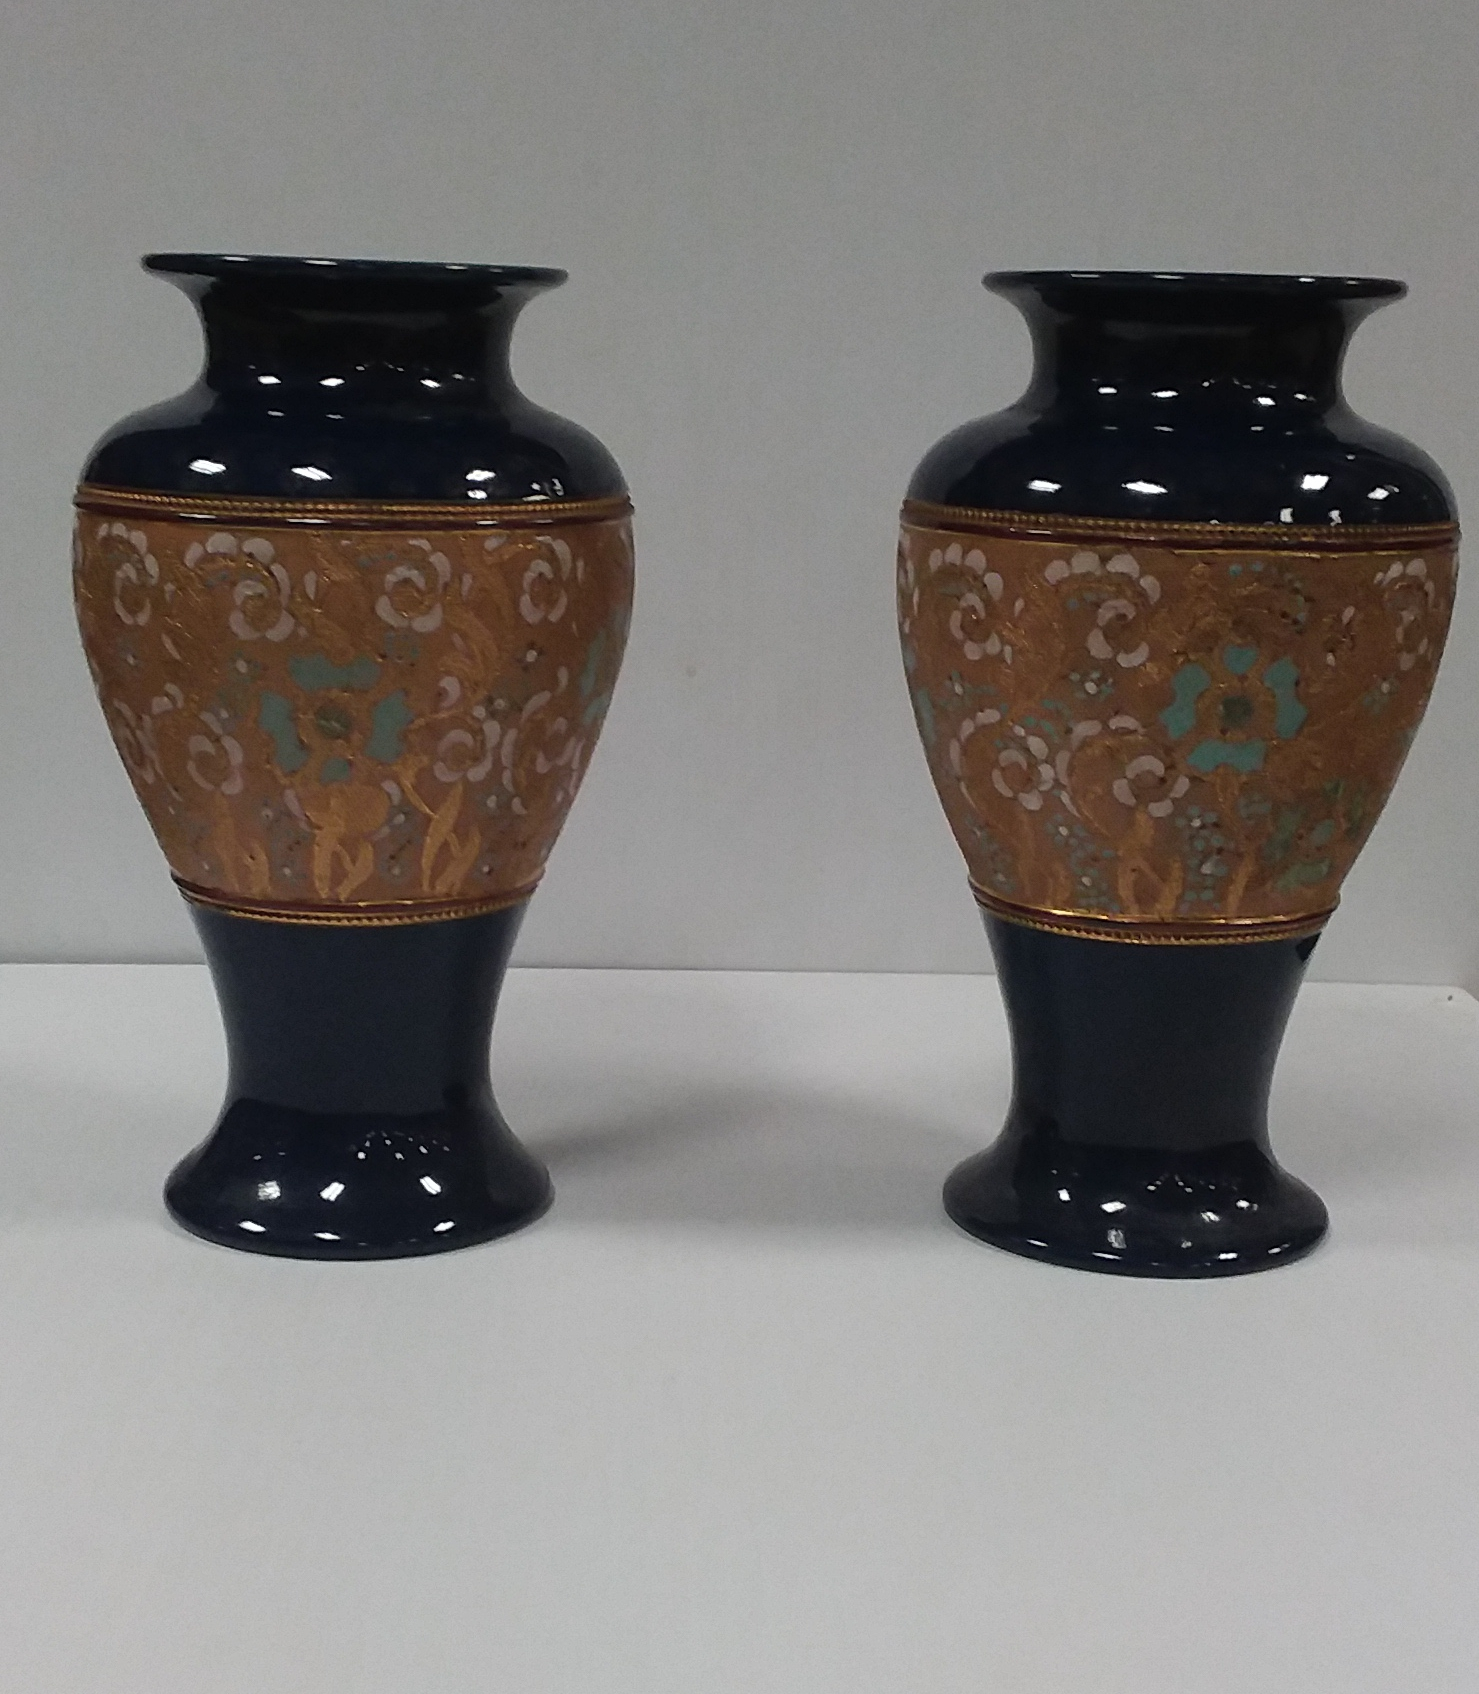 Antique Victorian Royal Doulton Slater Vases